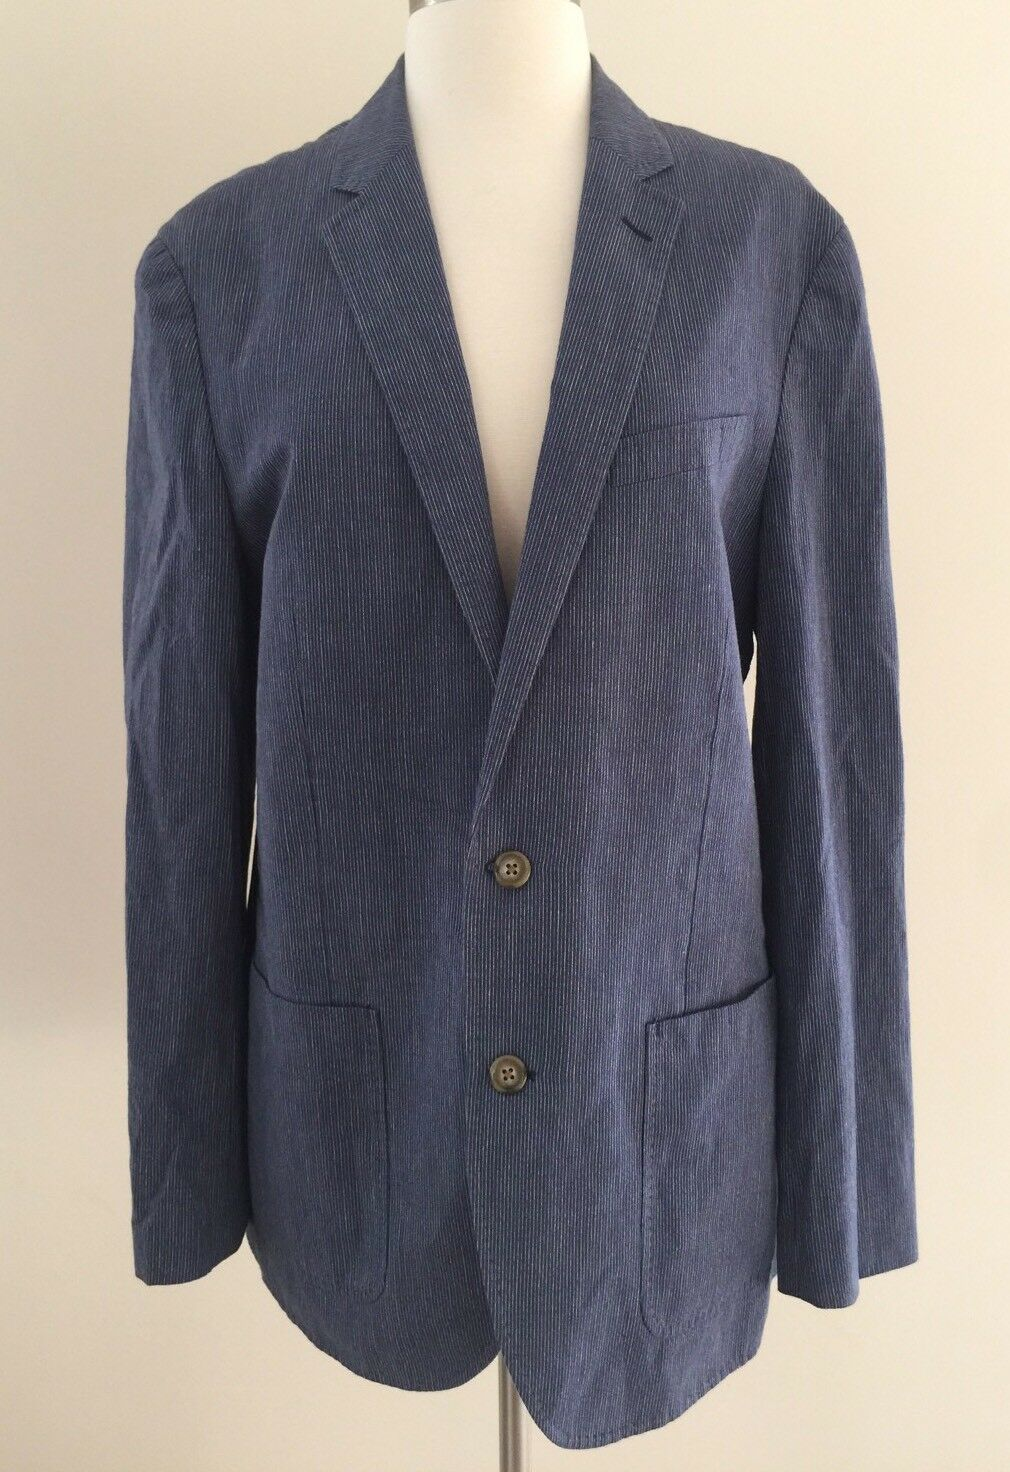 JCrew Ludlow summerweight cotton-linen blazer navy fine stripe F0529 40R NEW